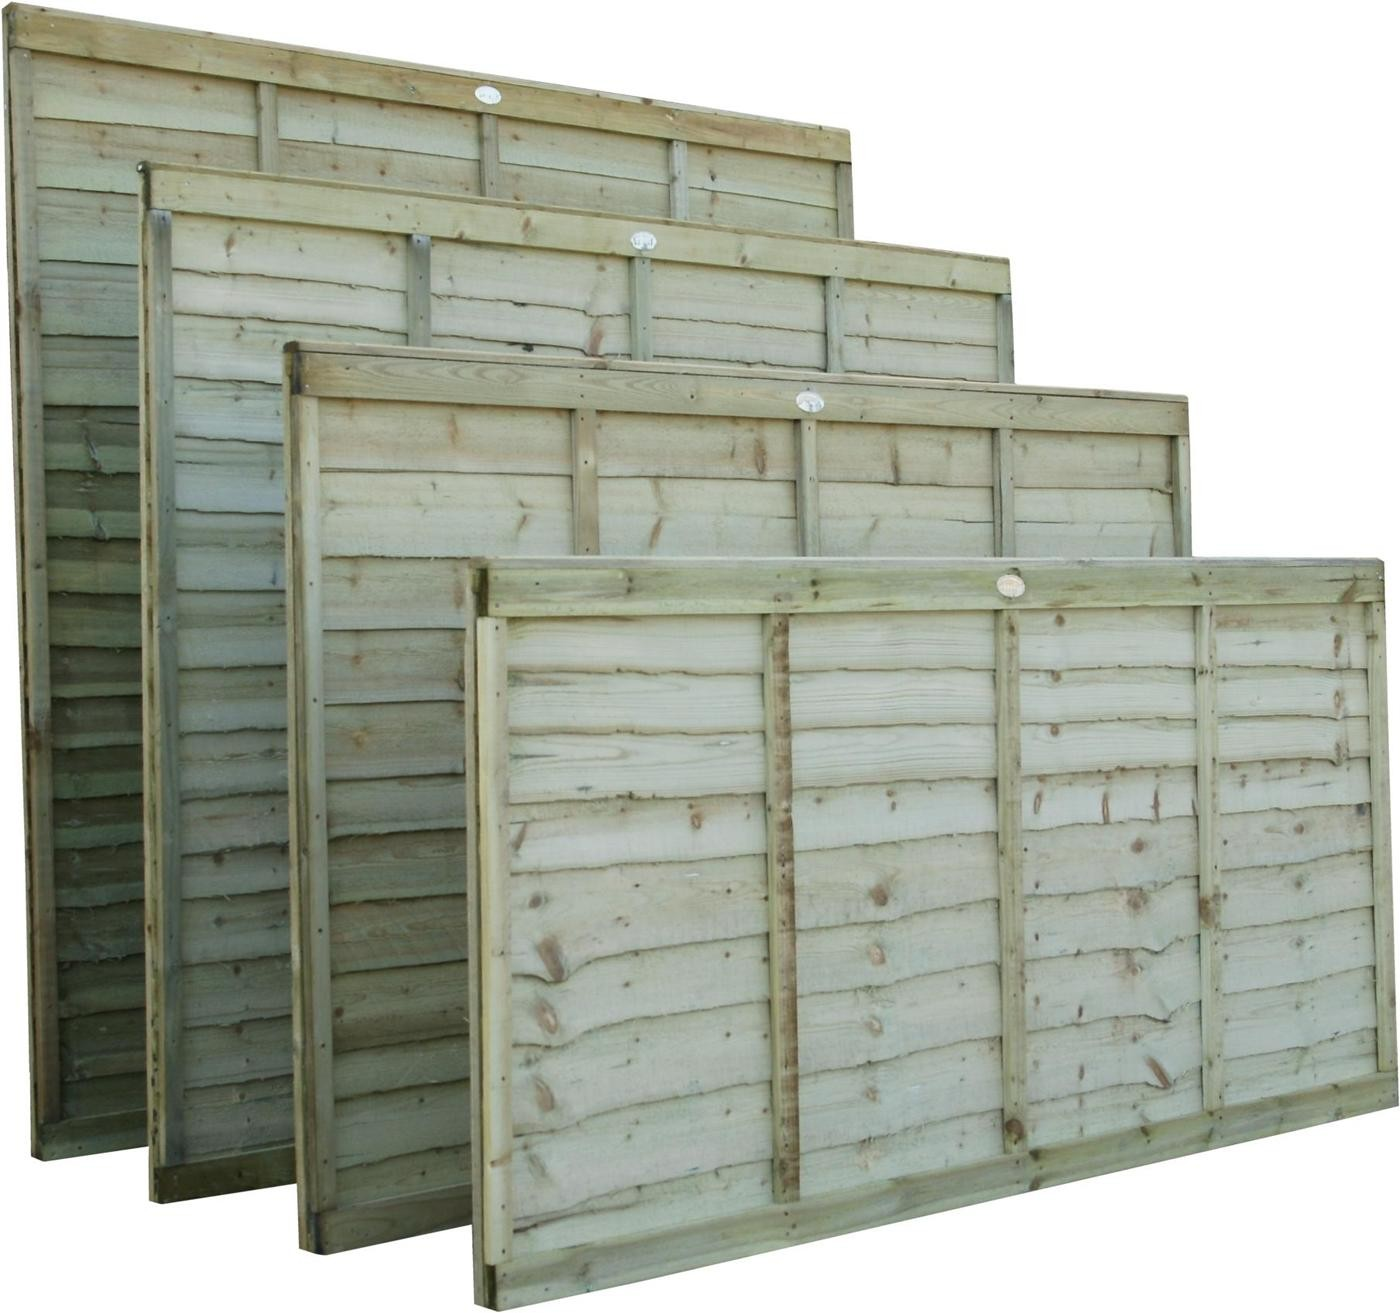 1830 x 1525mm Superlap Fence Panel (Professional) Green